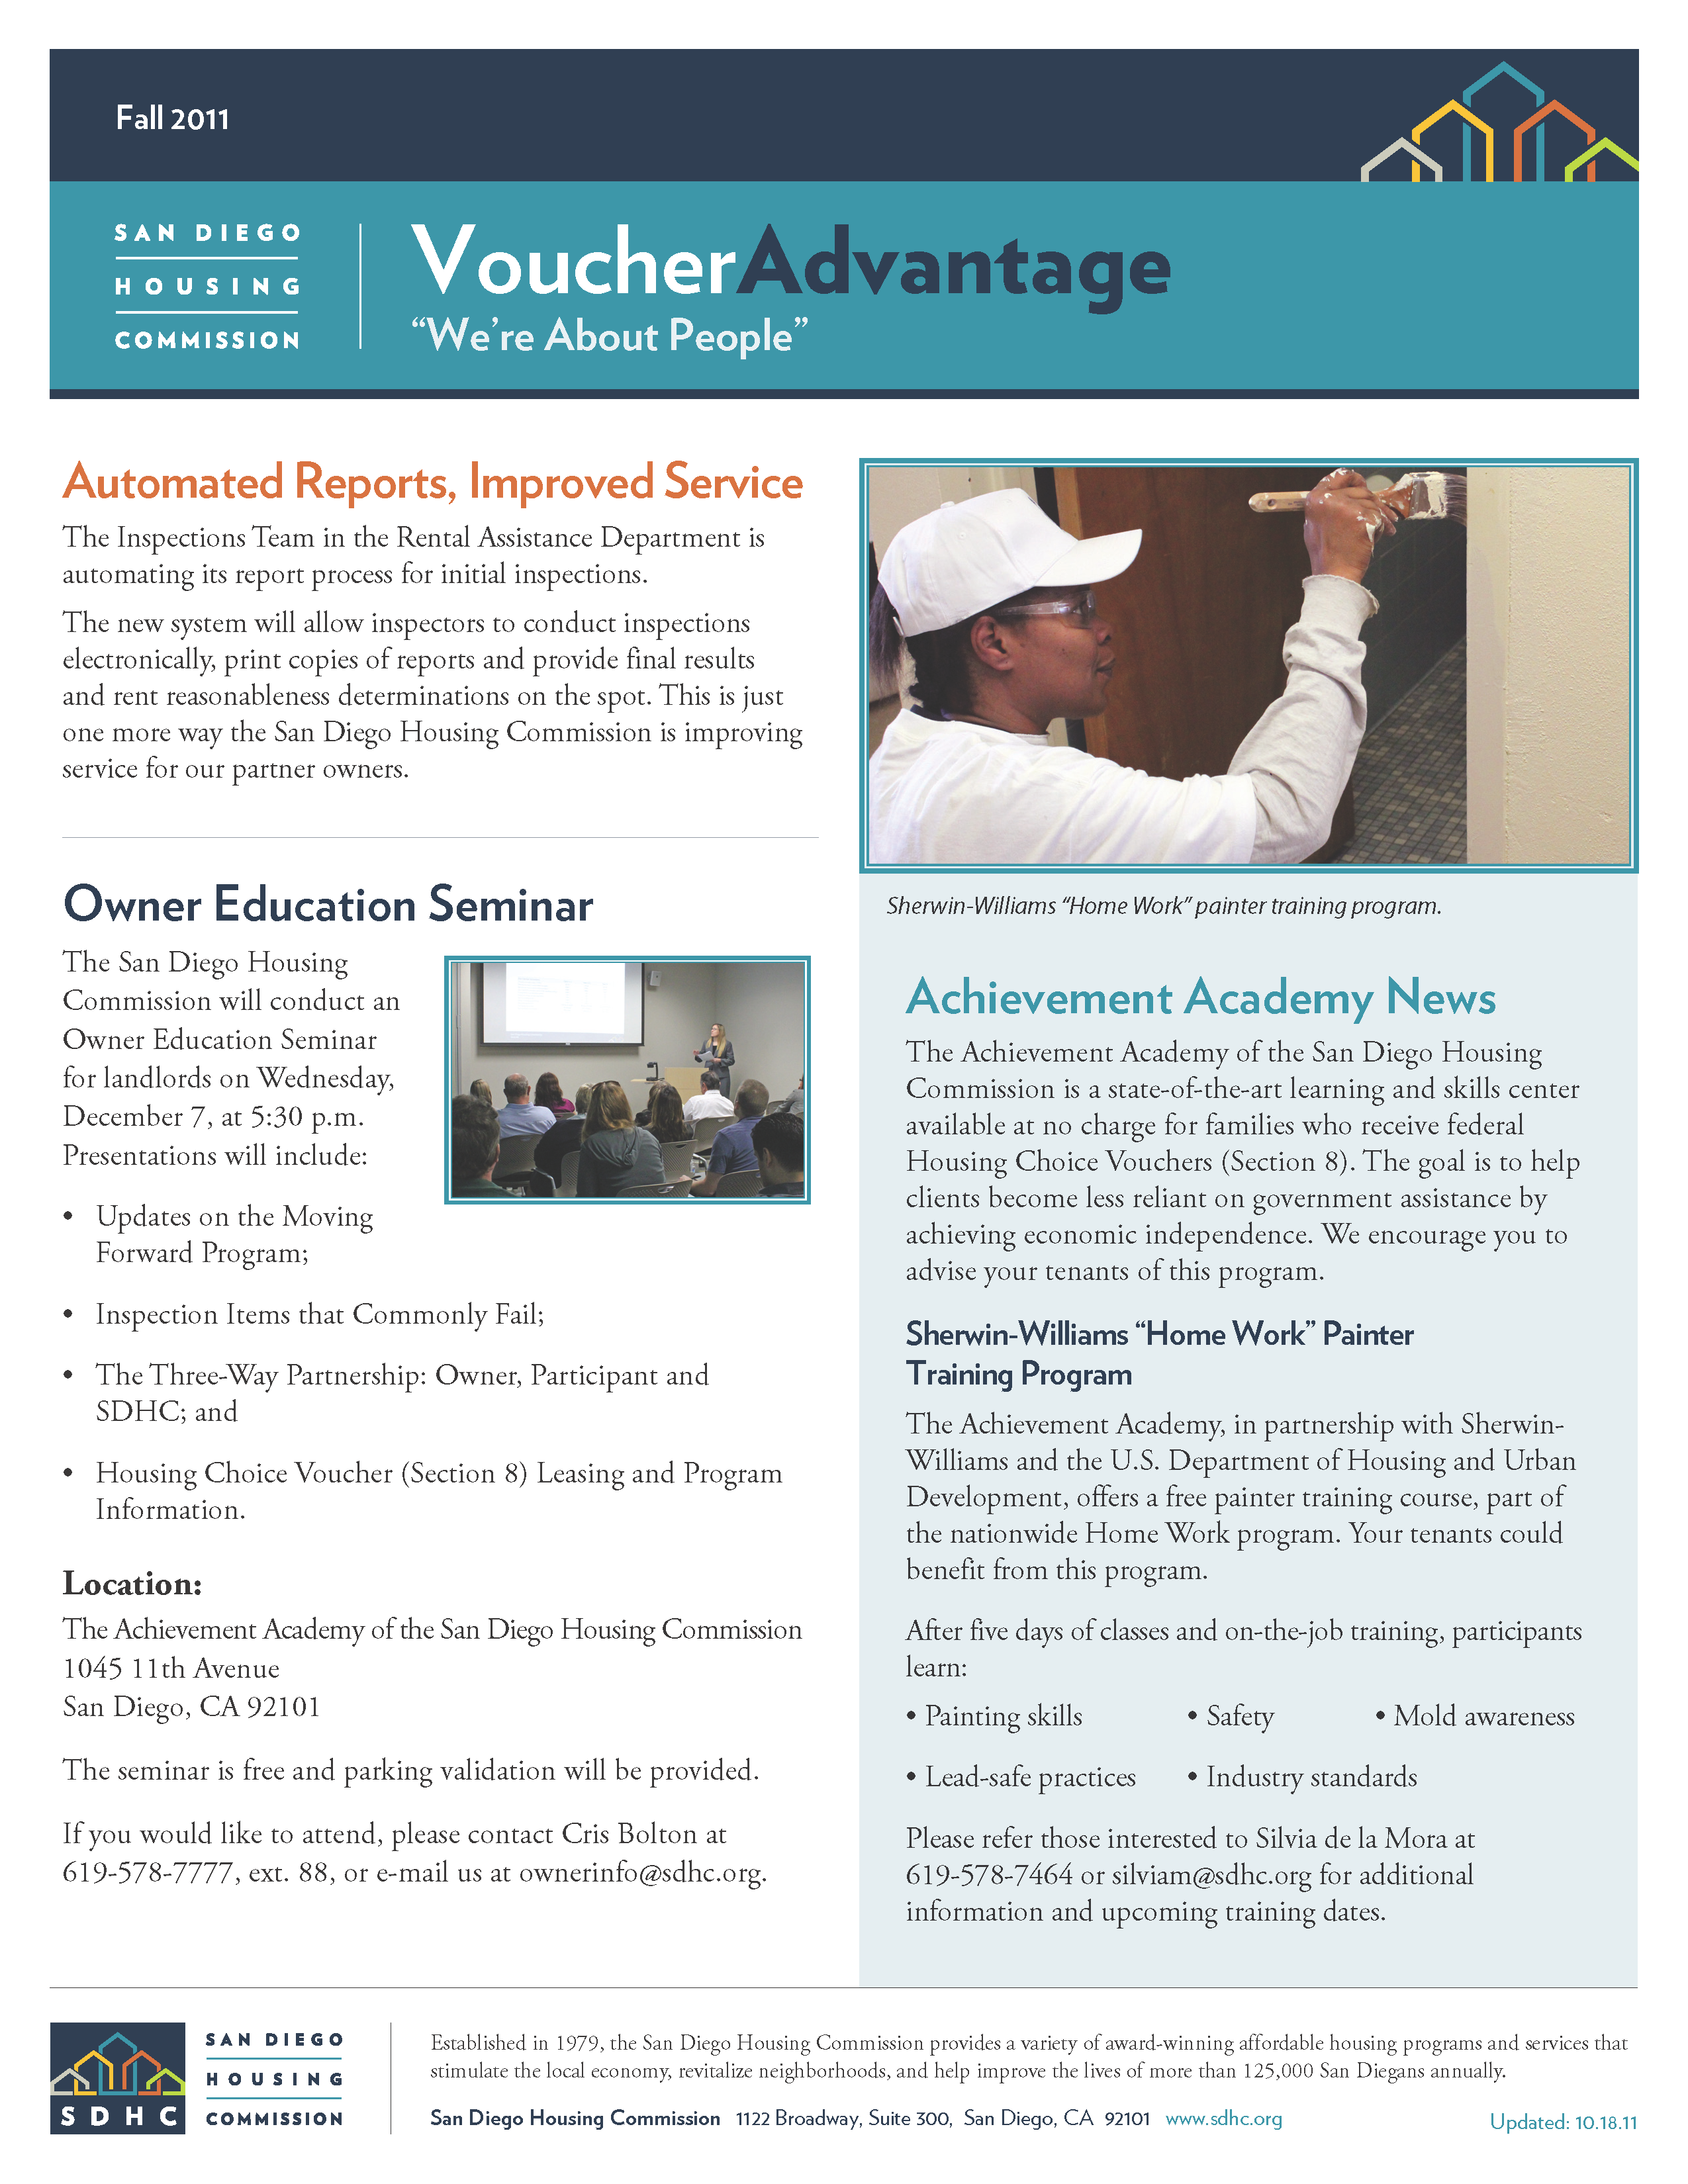 Voucher Advantage Fall 2011